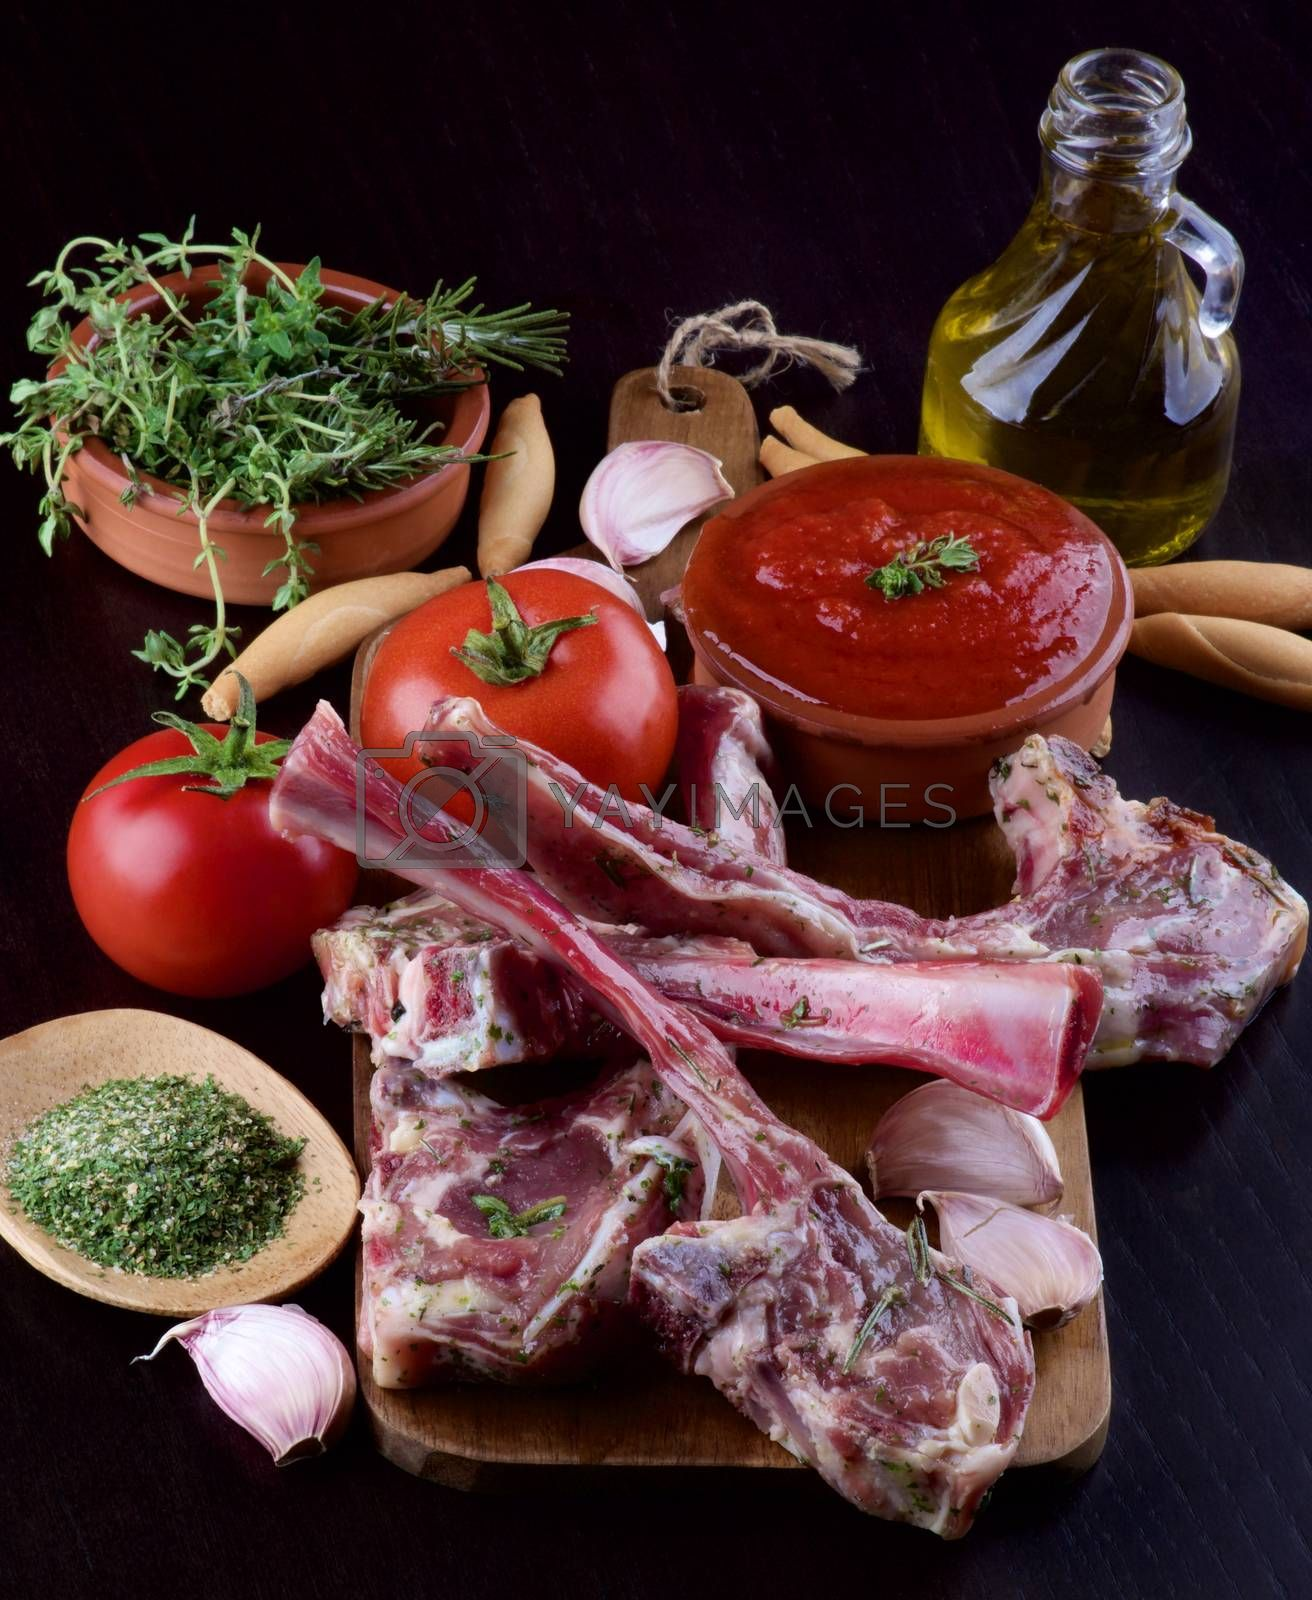 Ready to Roast Raw Lamb Ribs with Tomatoes, Sauce, Garlic, Herbs, Spices and Olive Oil on Wooden Cutting Board closeup on Dark Wooden background